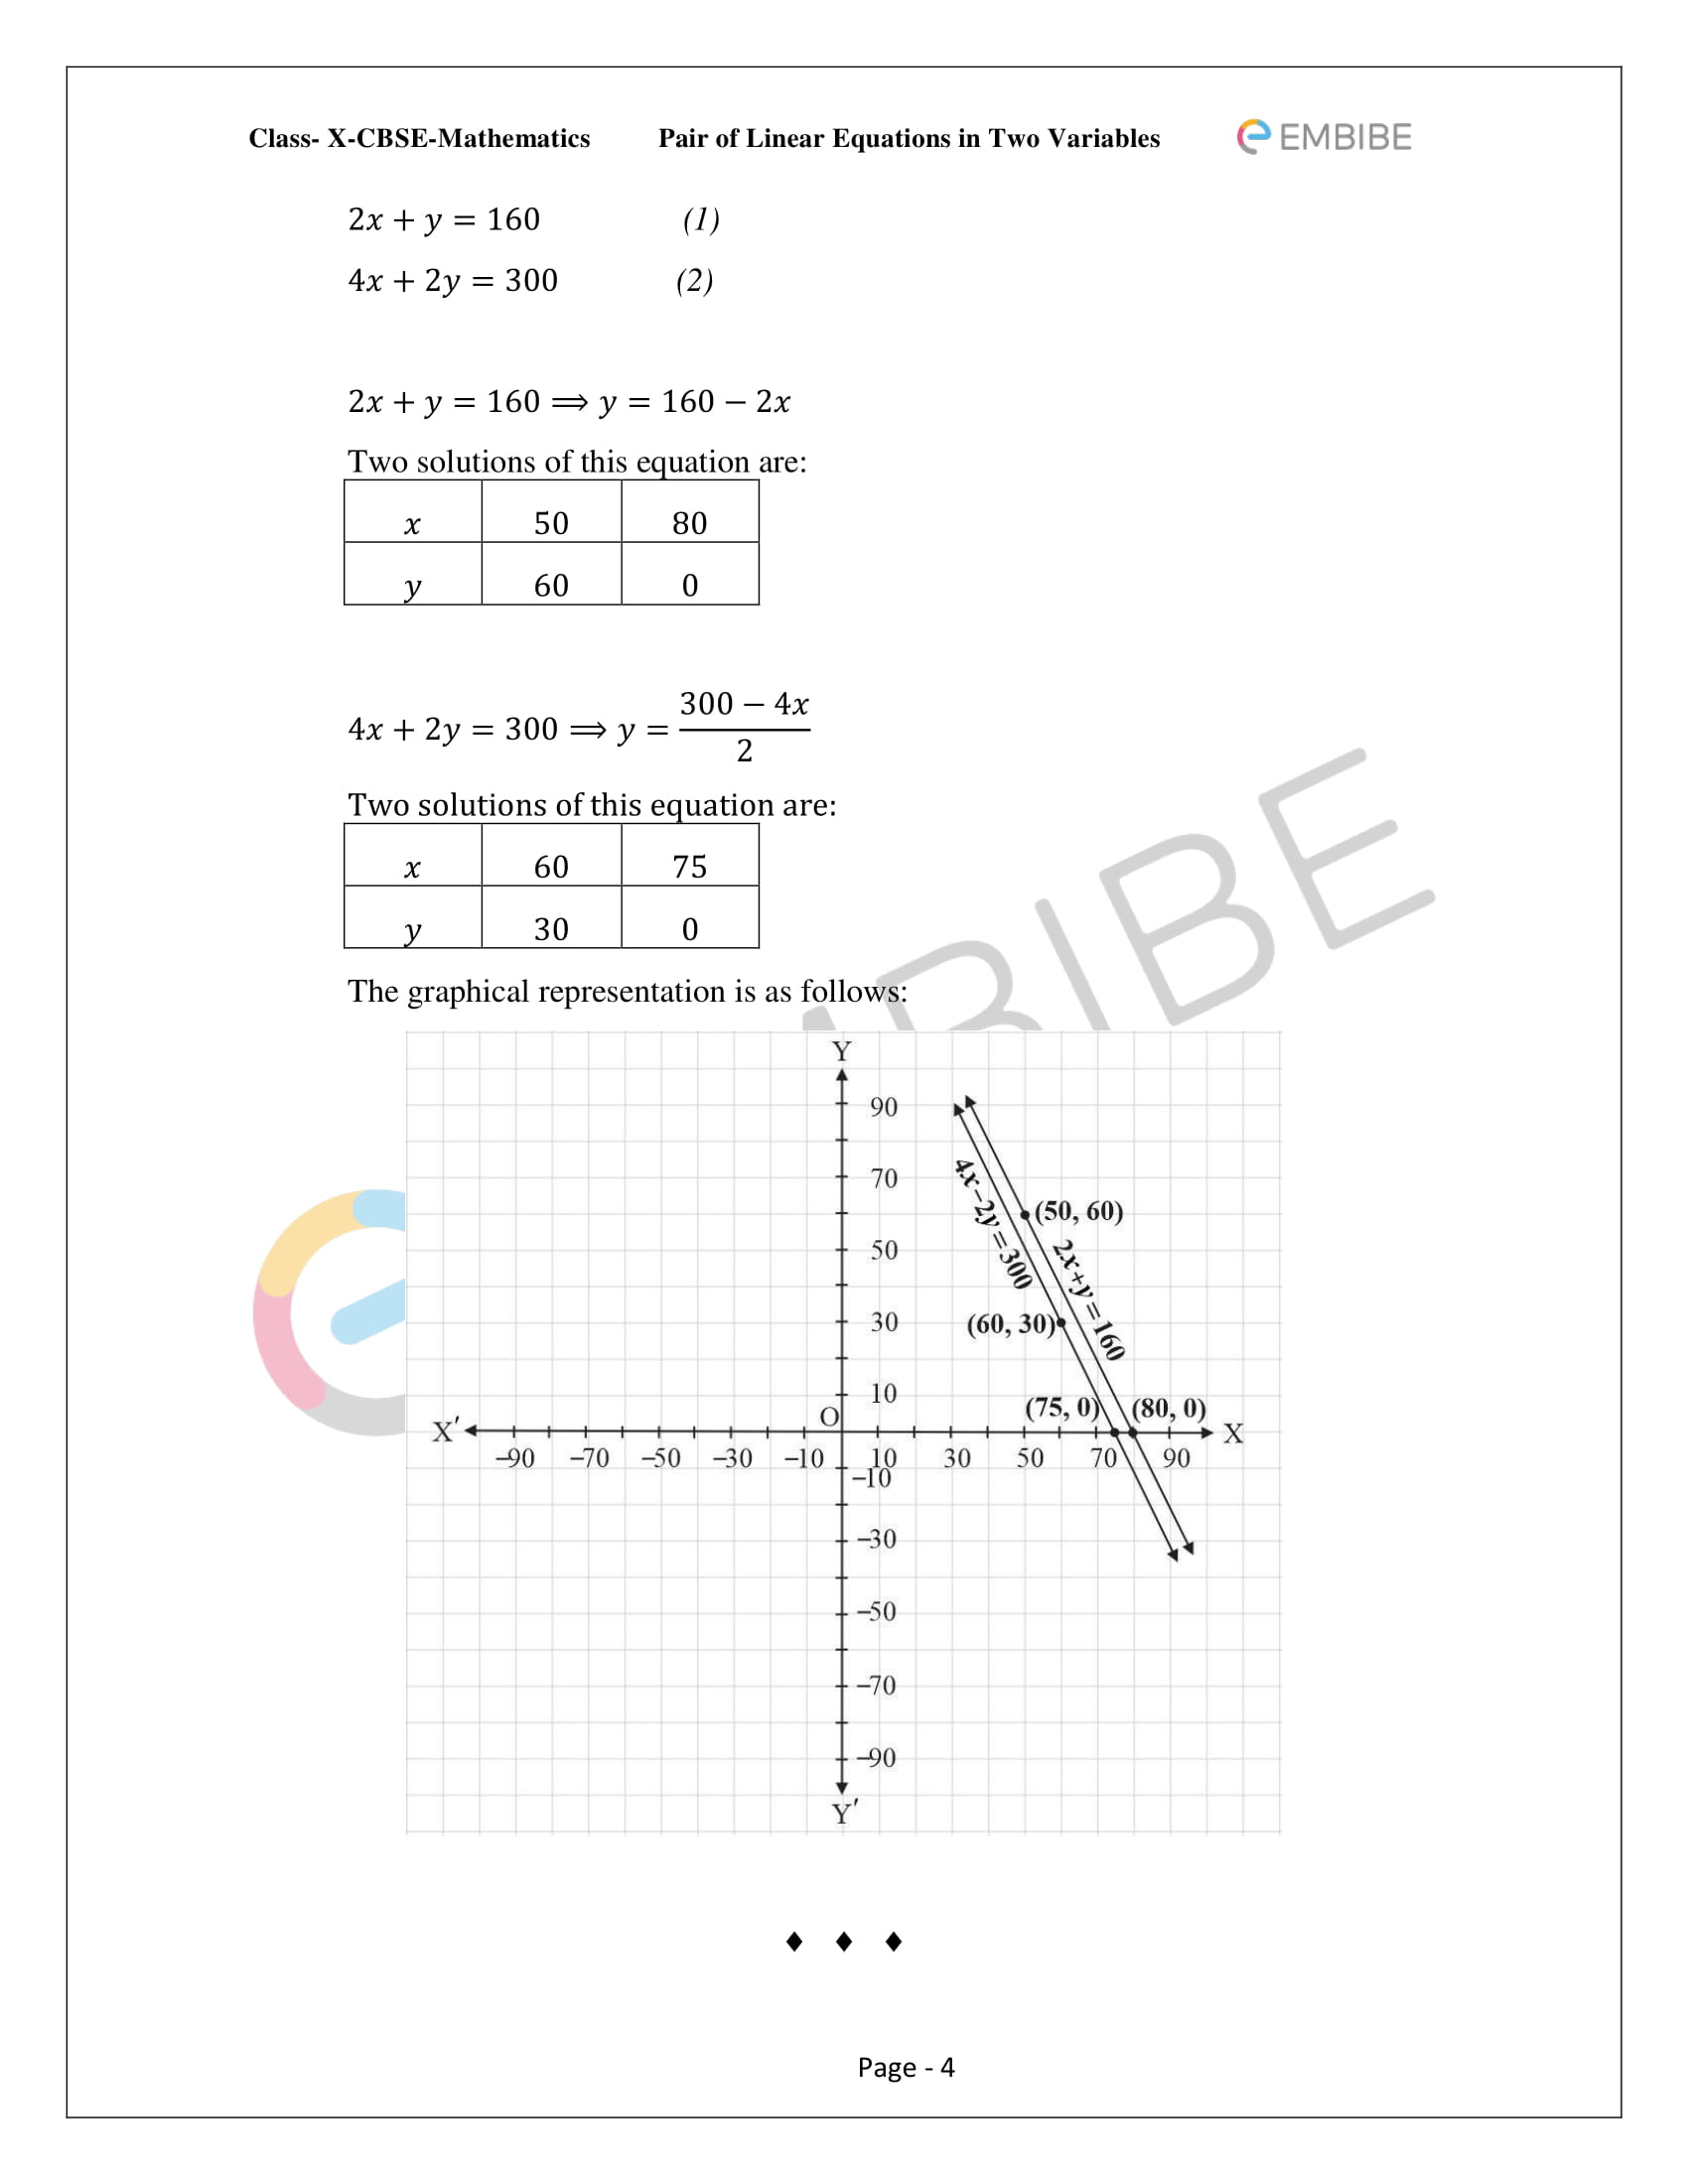 CBSE NCERT Solutions For Class 10 Maths Chapter 3 - Pair of Linear Equations In Two Variables - 4